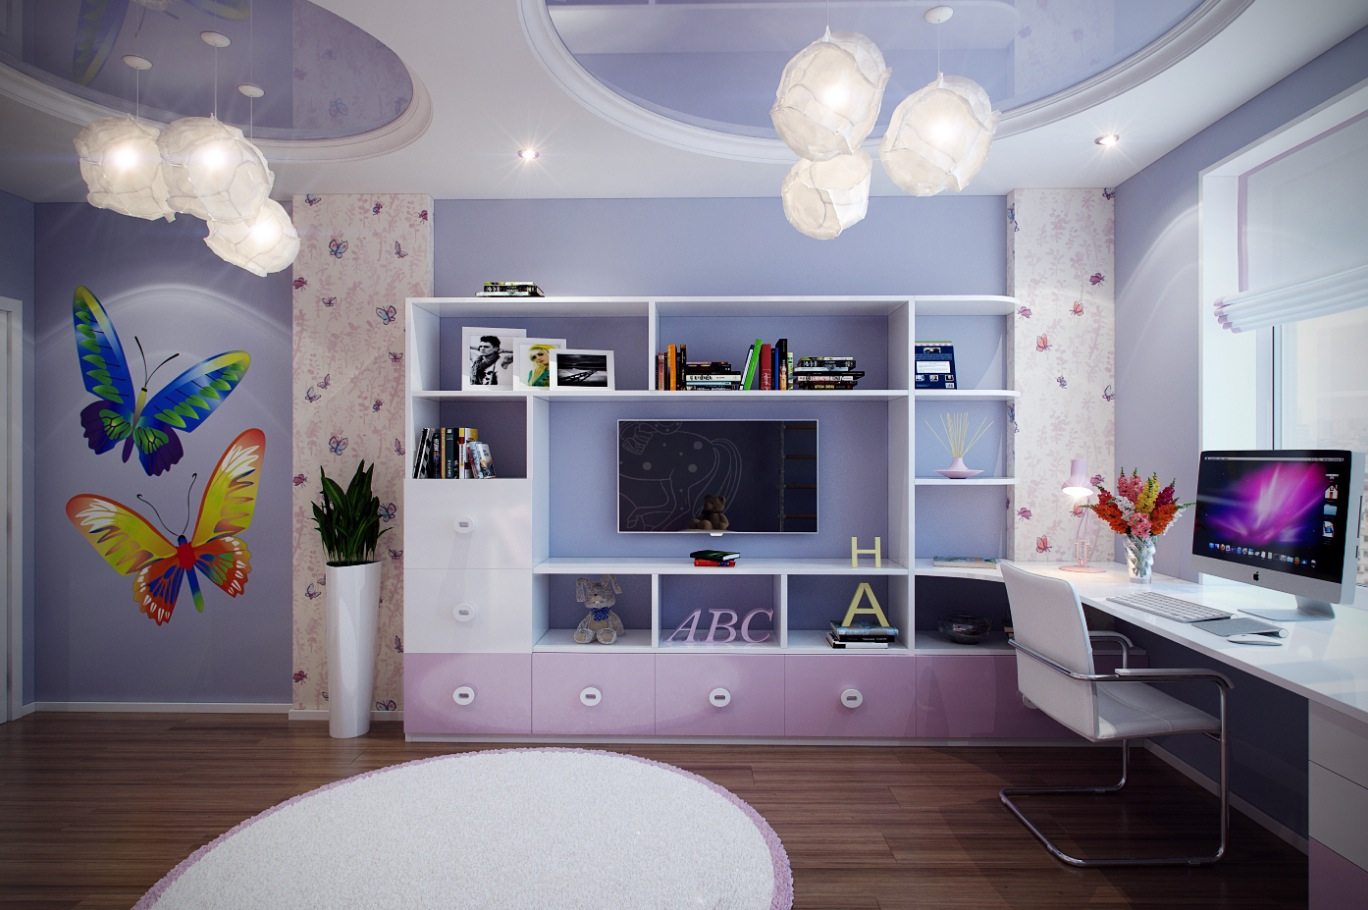 Casting color over kids rooms - Purple room for girls ...